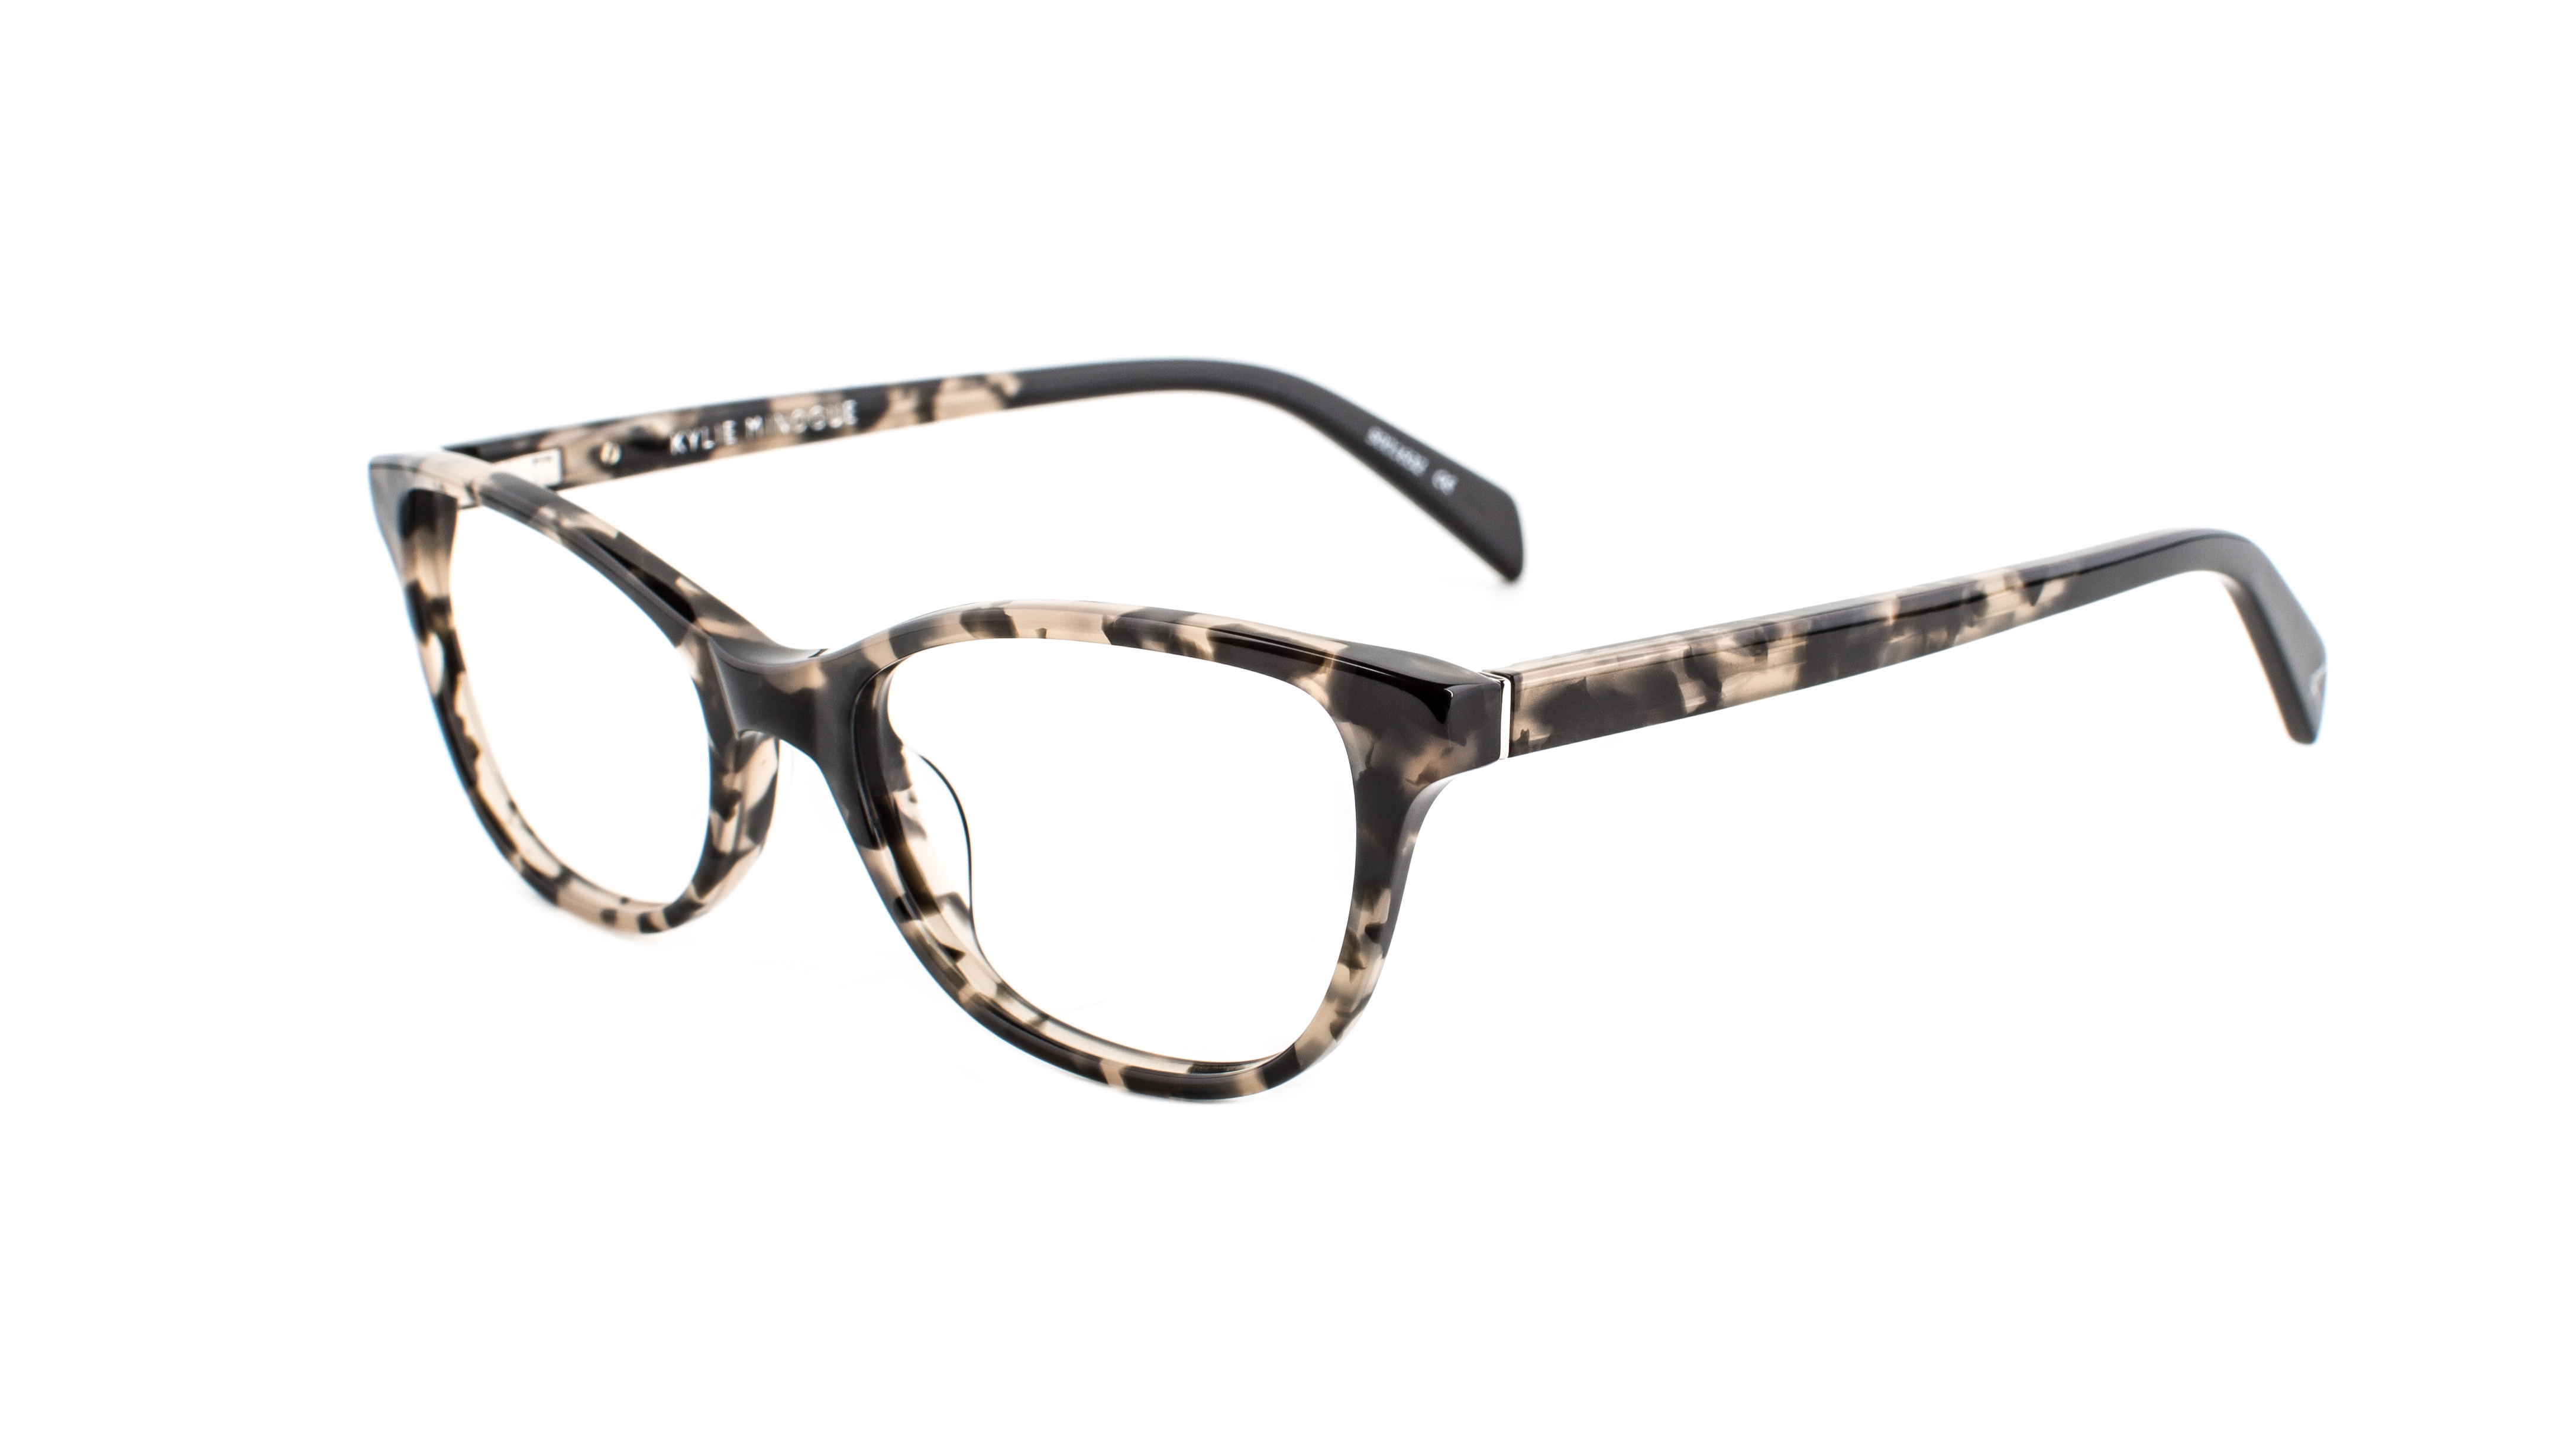 Kylie Minogue Eyewear_Kylie 02_SKU 30520110_RRP 2 pairs from $369 (2)